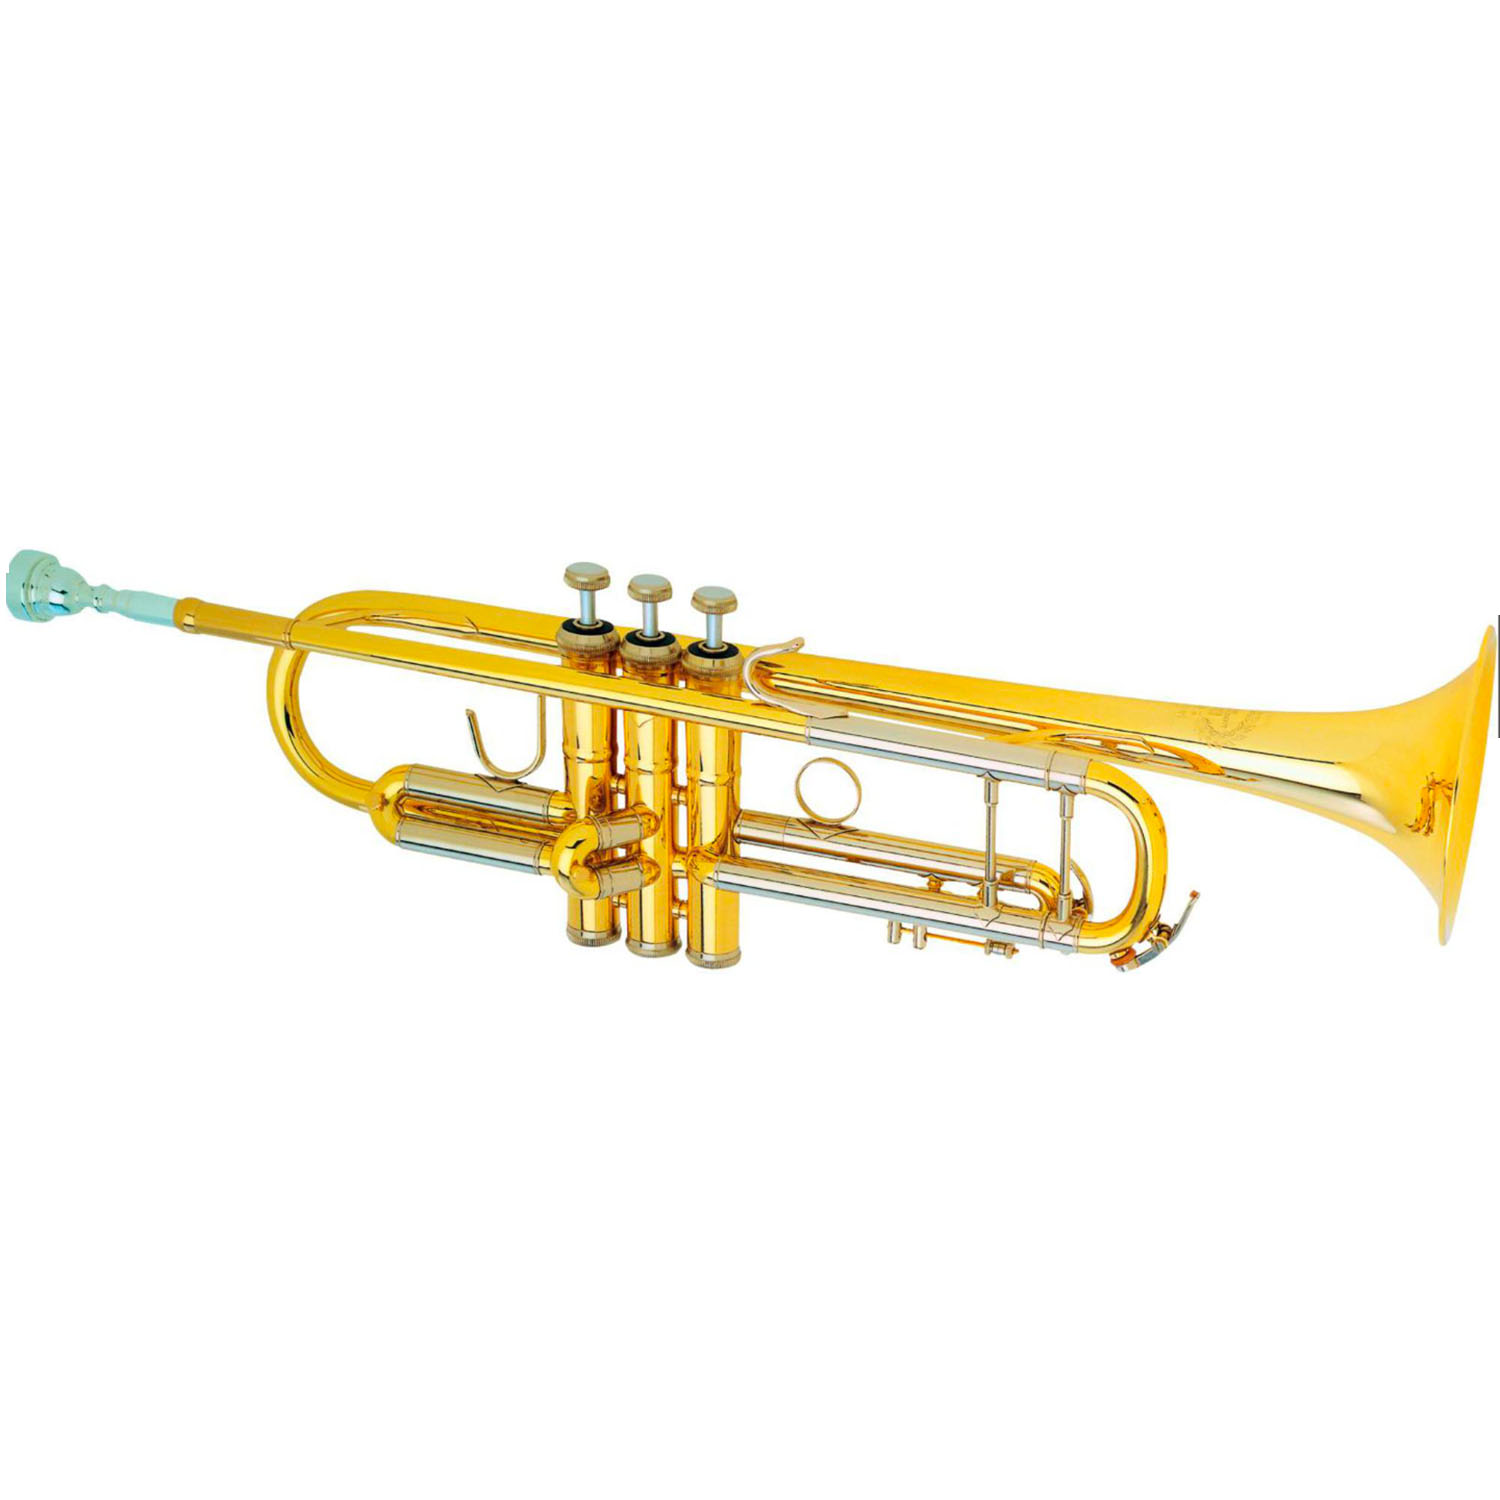 "B&S ""Challenger I"" Professional Bb Trumpet - $100.00 Instant Rebate"